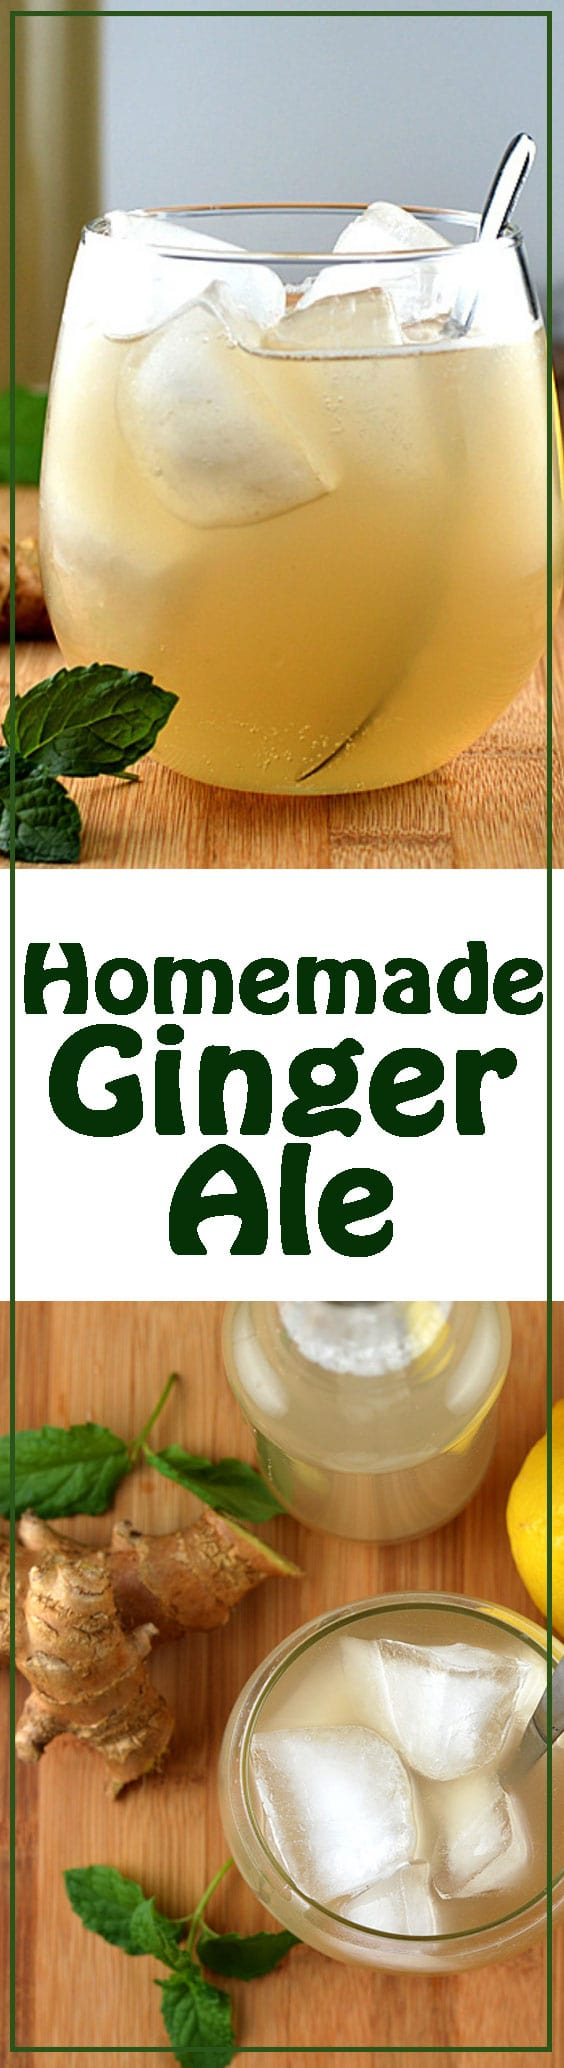 GINGER-ALE-PINTEREST